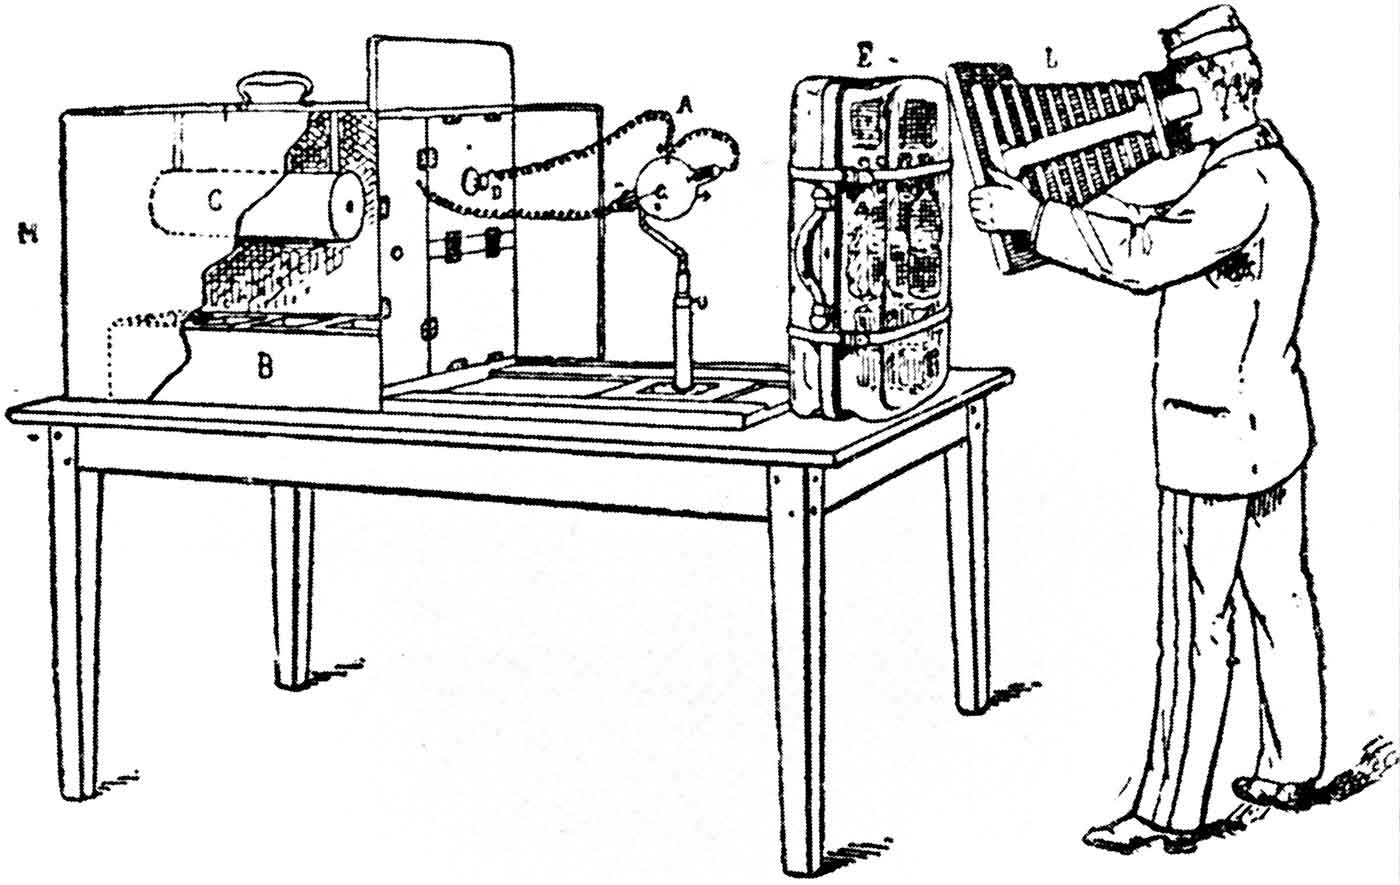 Drawing of an invention for using X-Rays to scan luggage